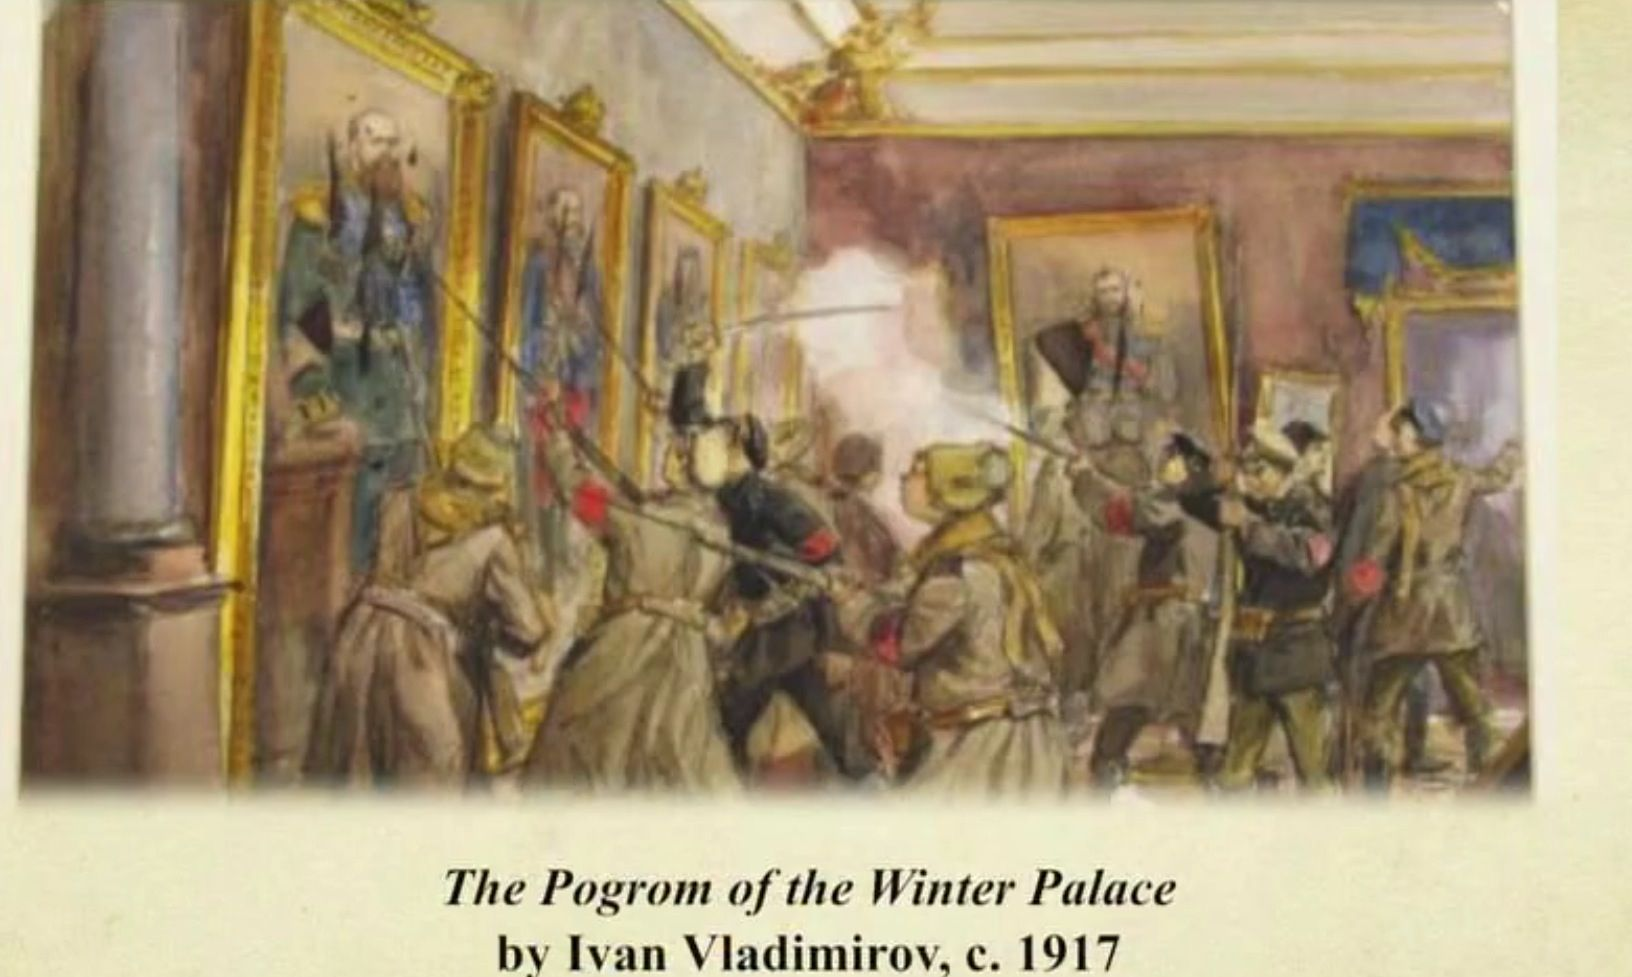 best images about history russian revolution 17 best images about history russian revolution the winter russian revolution timeline and winter palace